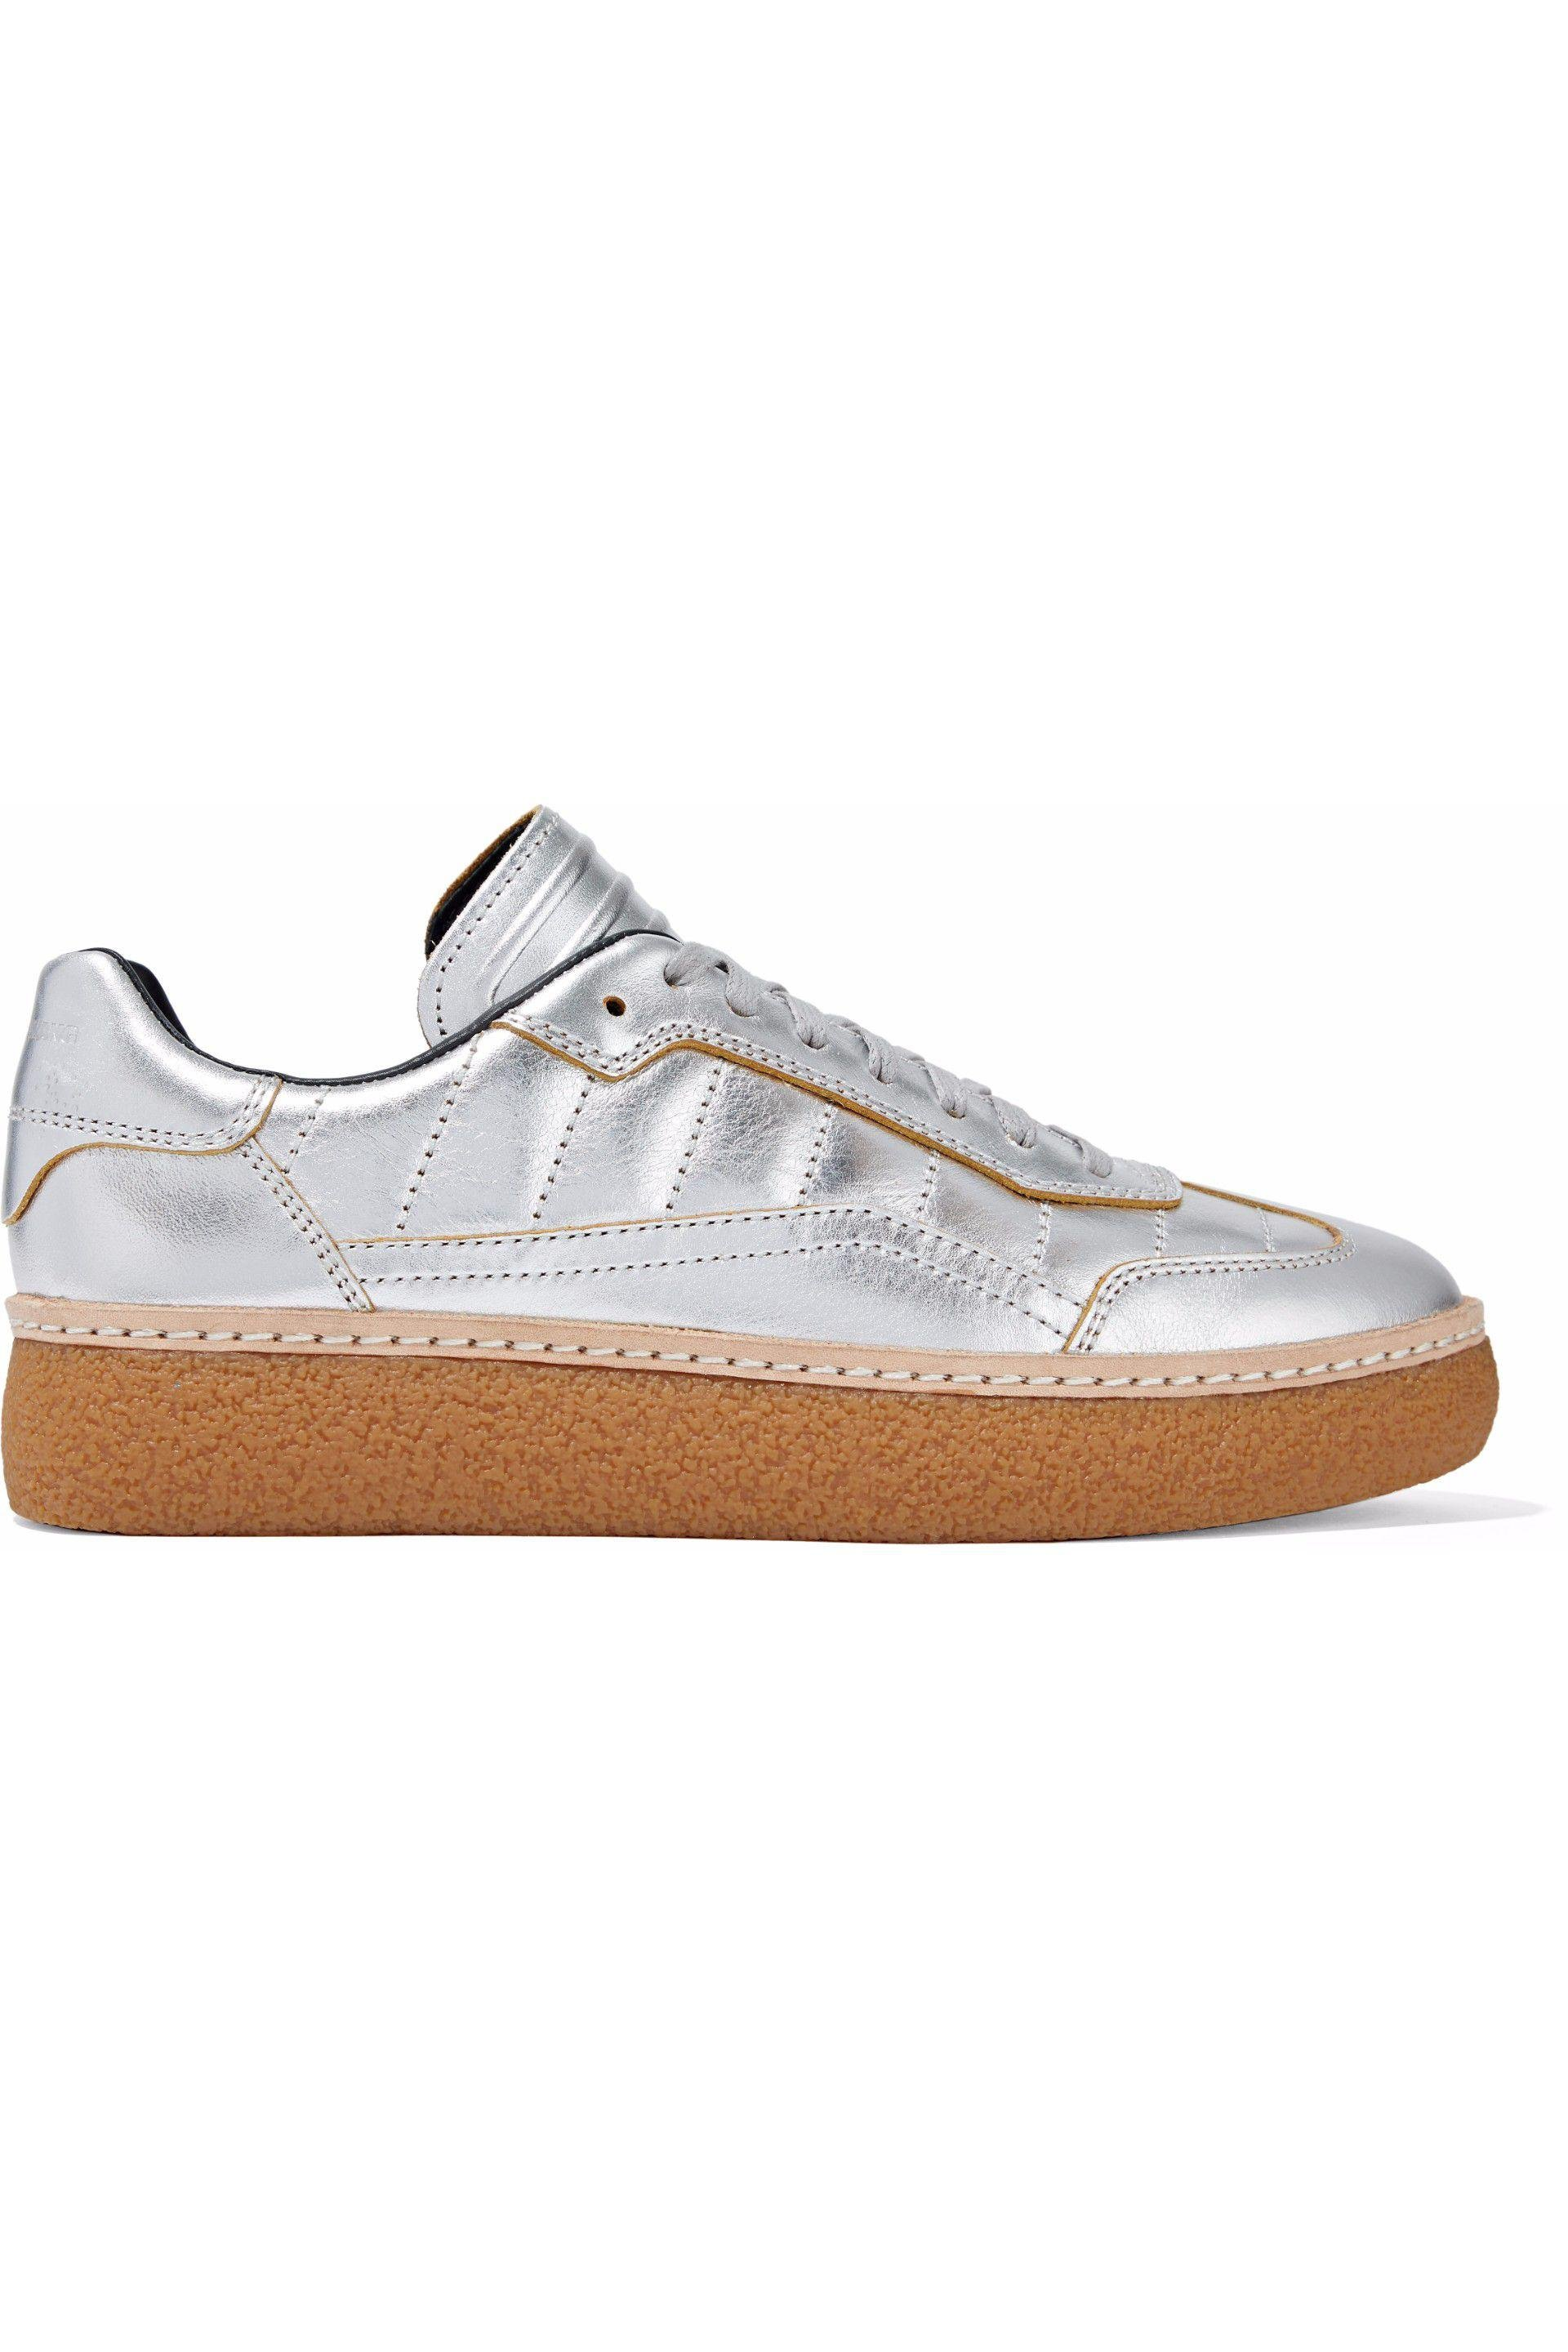 Alexander Wang Woman Metallic Quilted Leather Sneakers Size 40 y874CZbOh